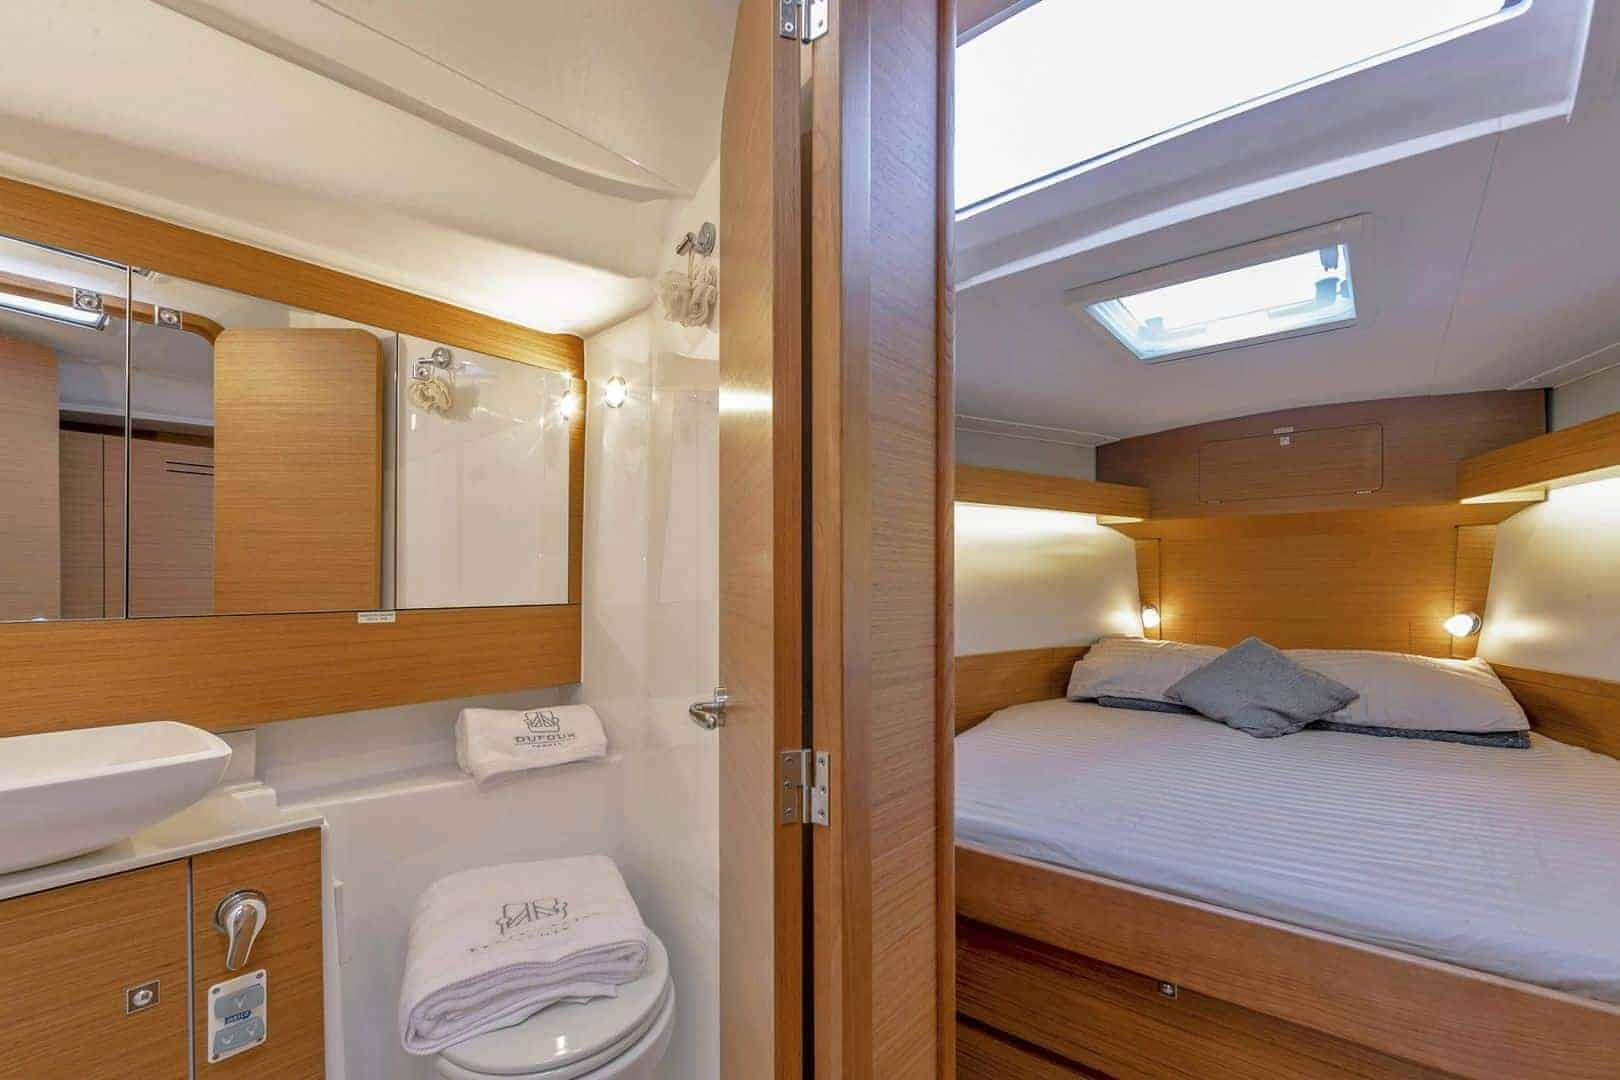 Head of the Dufour Grand Large 430 with towels on the toilette and the cabin is to the right in the next room